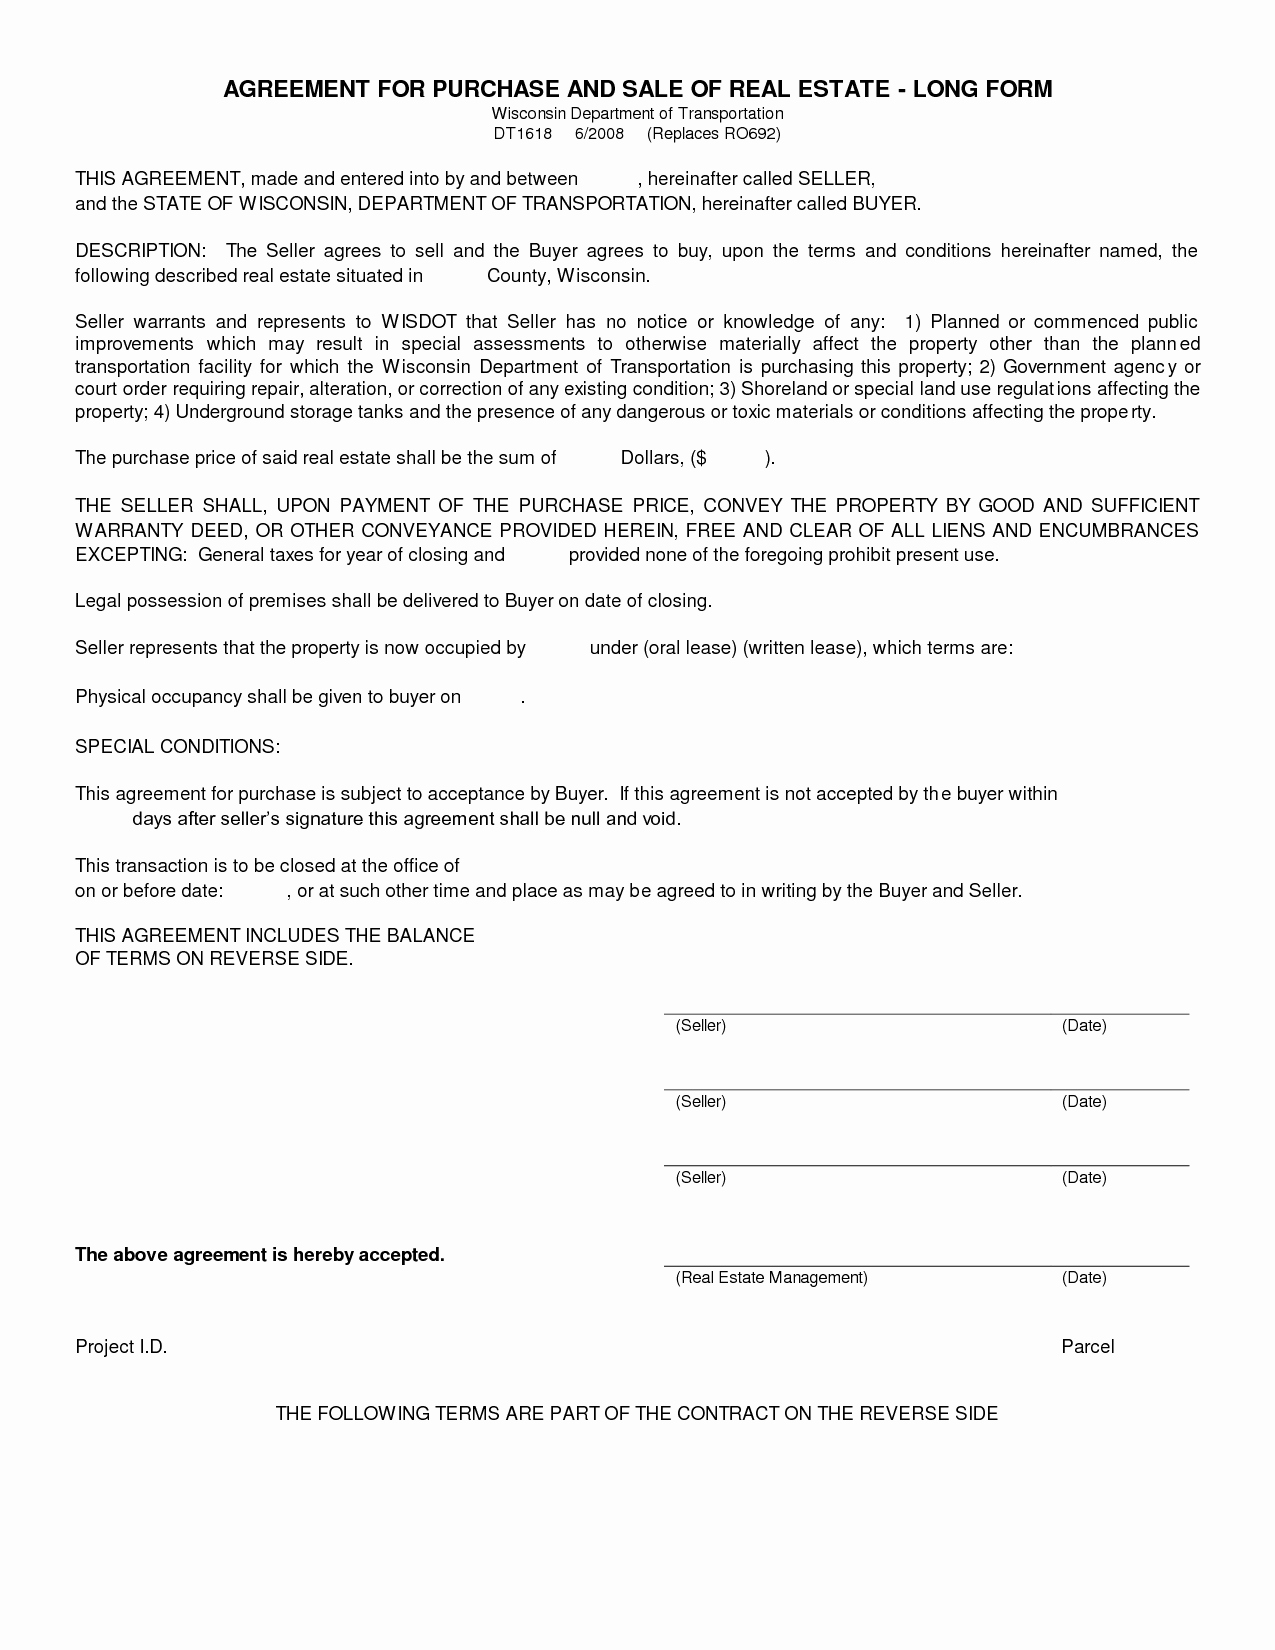 Estate Sale Contract Template Beautiful Free Blank Purchase Agreement form Images Agreement to